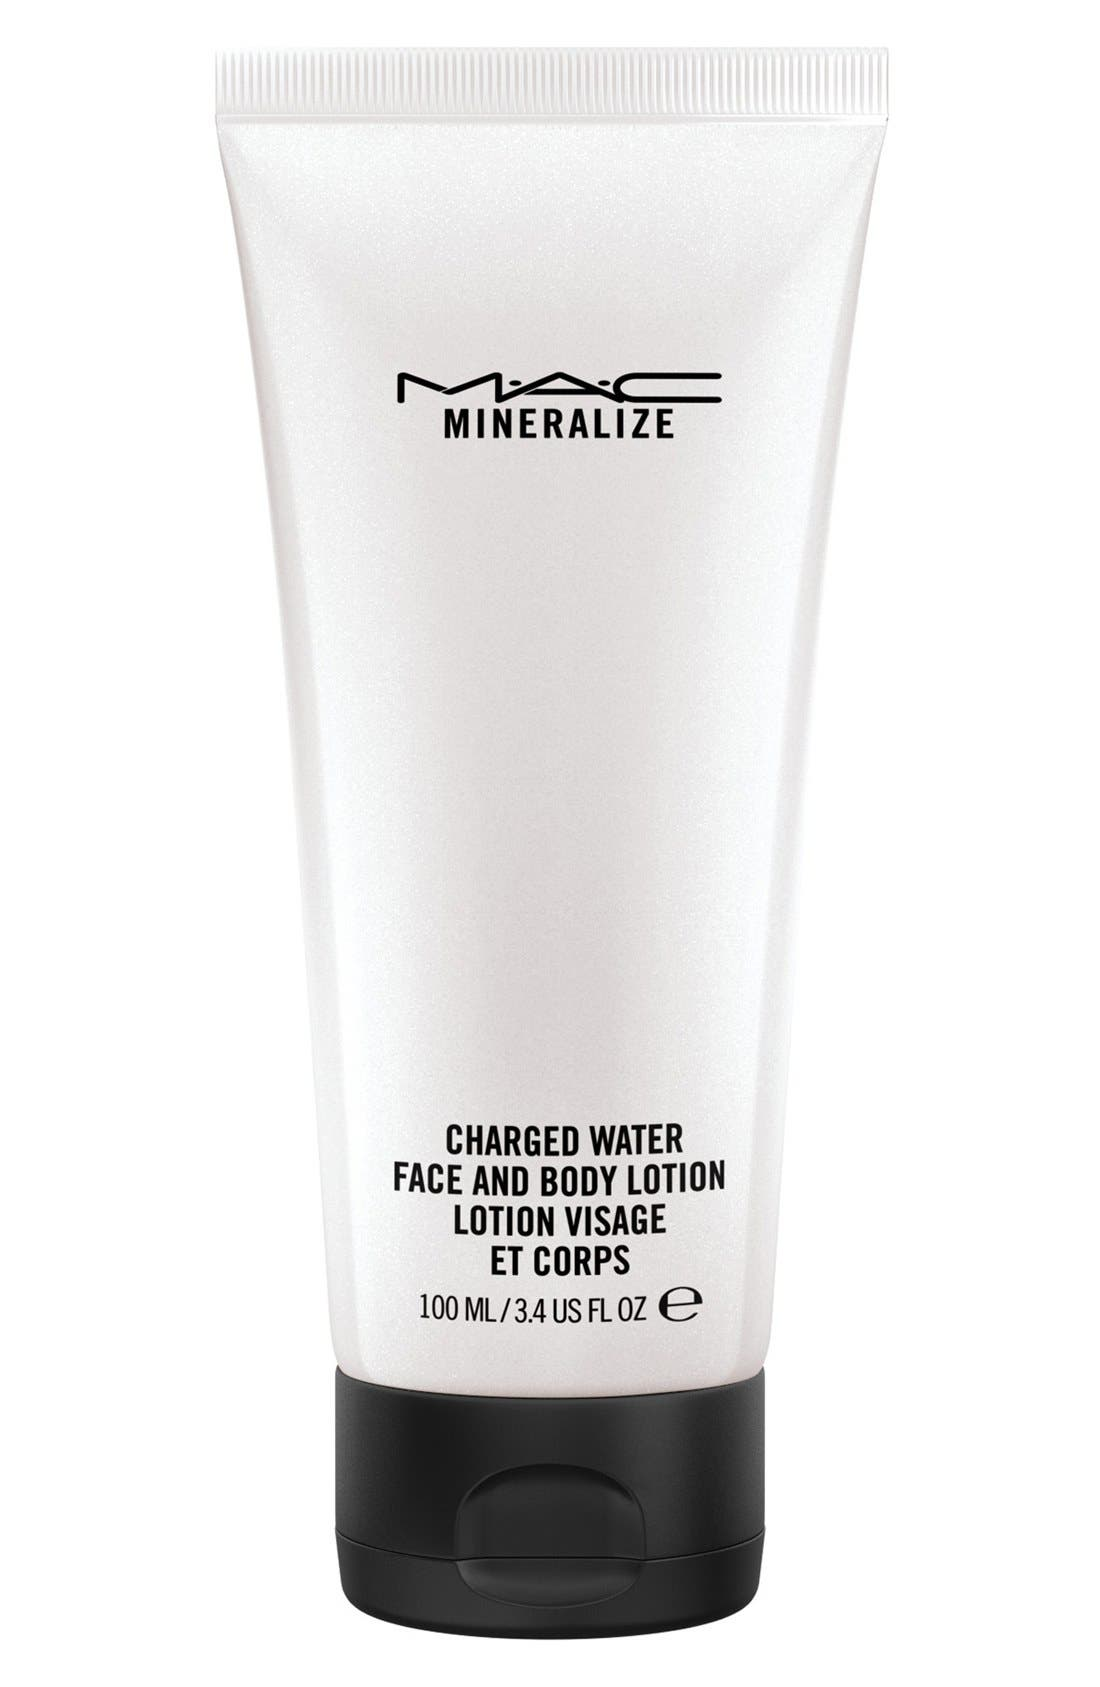 MAC 'Mineralize' Charged Water Face & Body Lotion,                             Main thumbnail 1, color,                             000